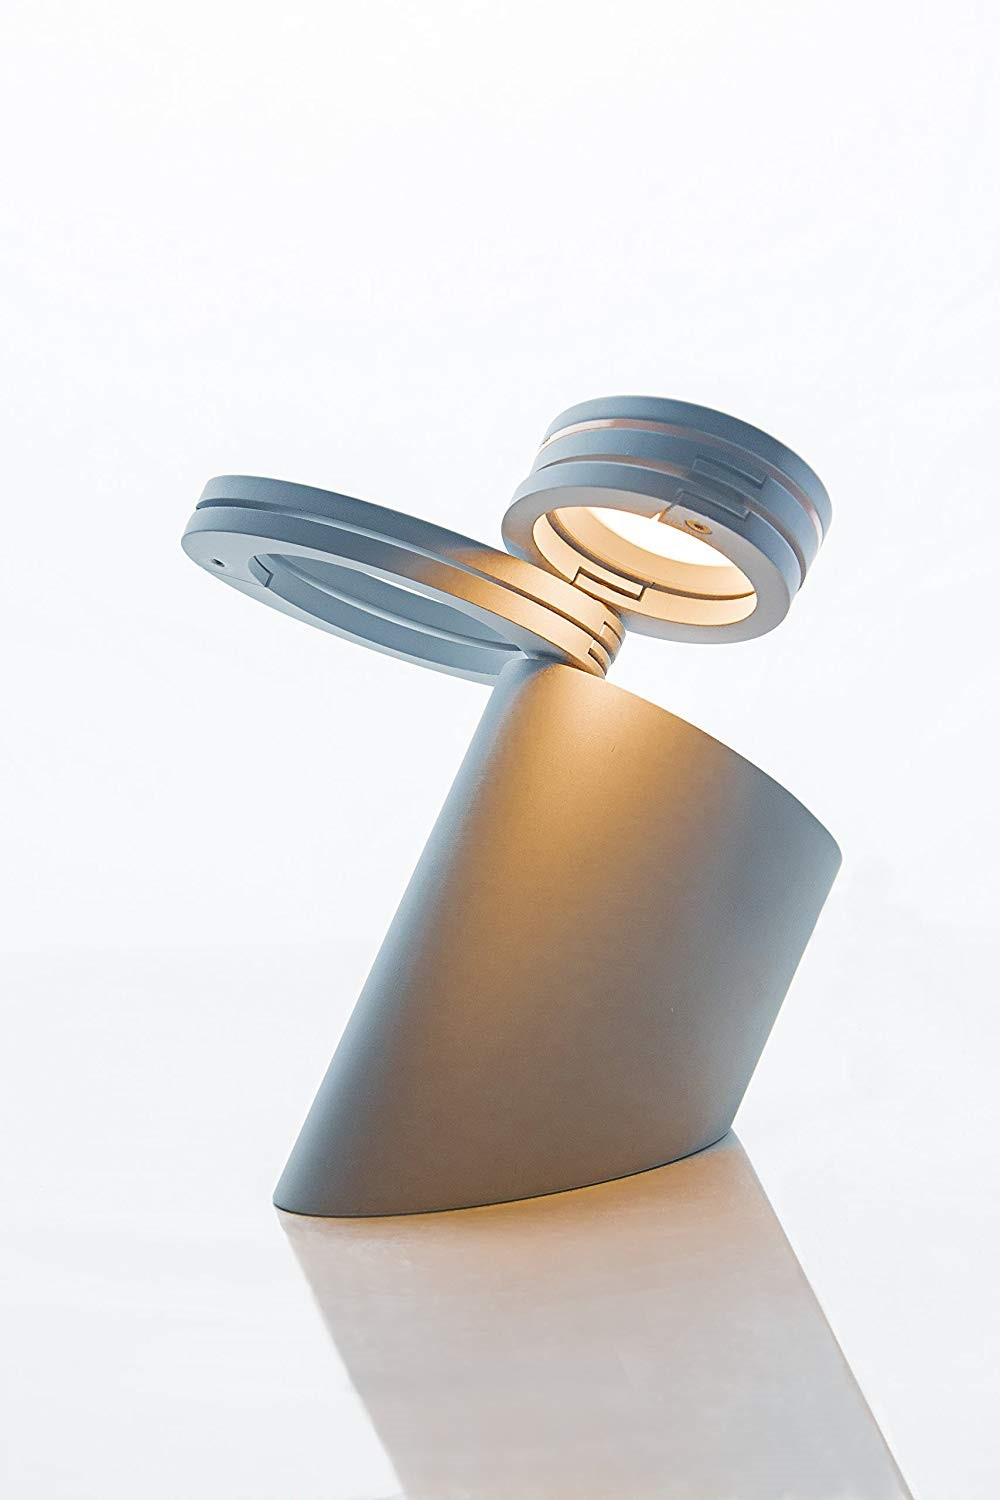 Bluetooth desk lamp-Skala